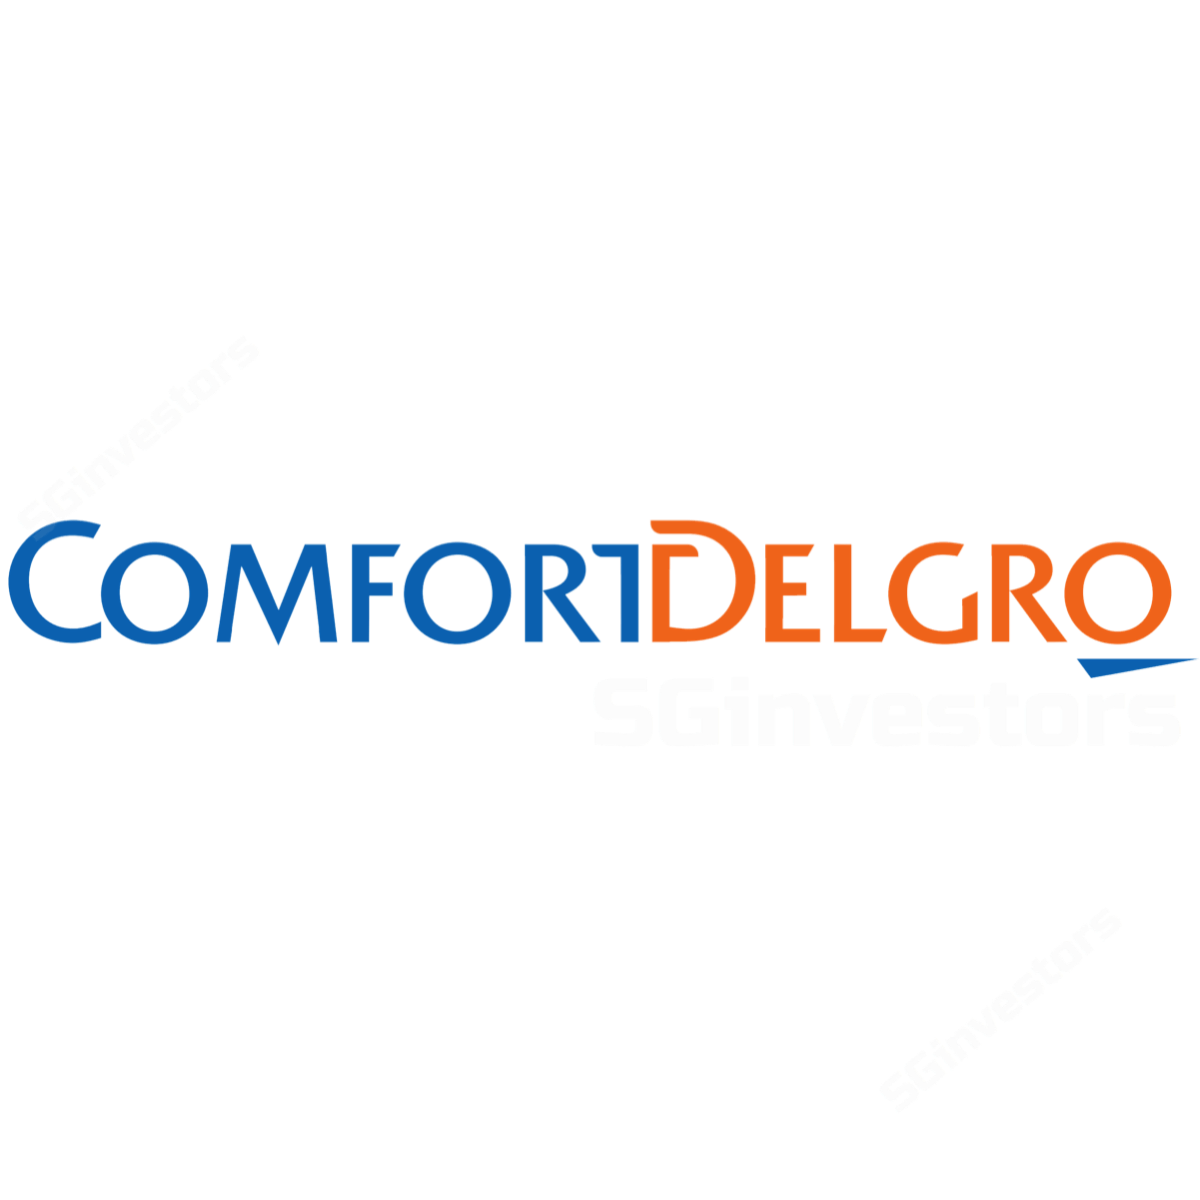 ComfortDelGro - CGS-CIMB 2018-05-12: Worst Is Over; But More Catalysts Are Still Needed